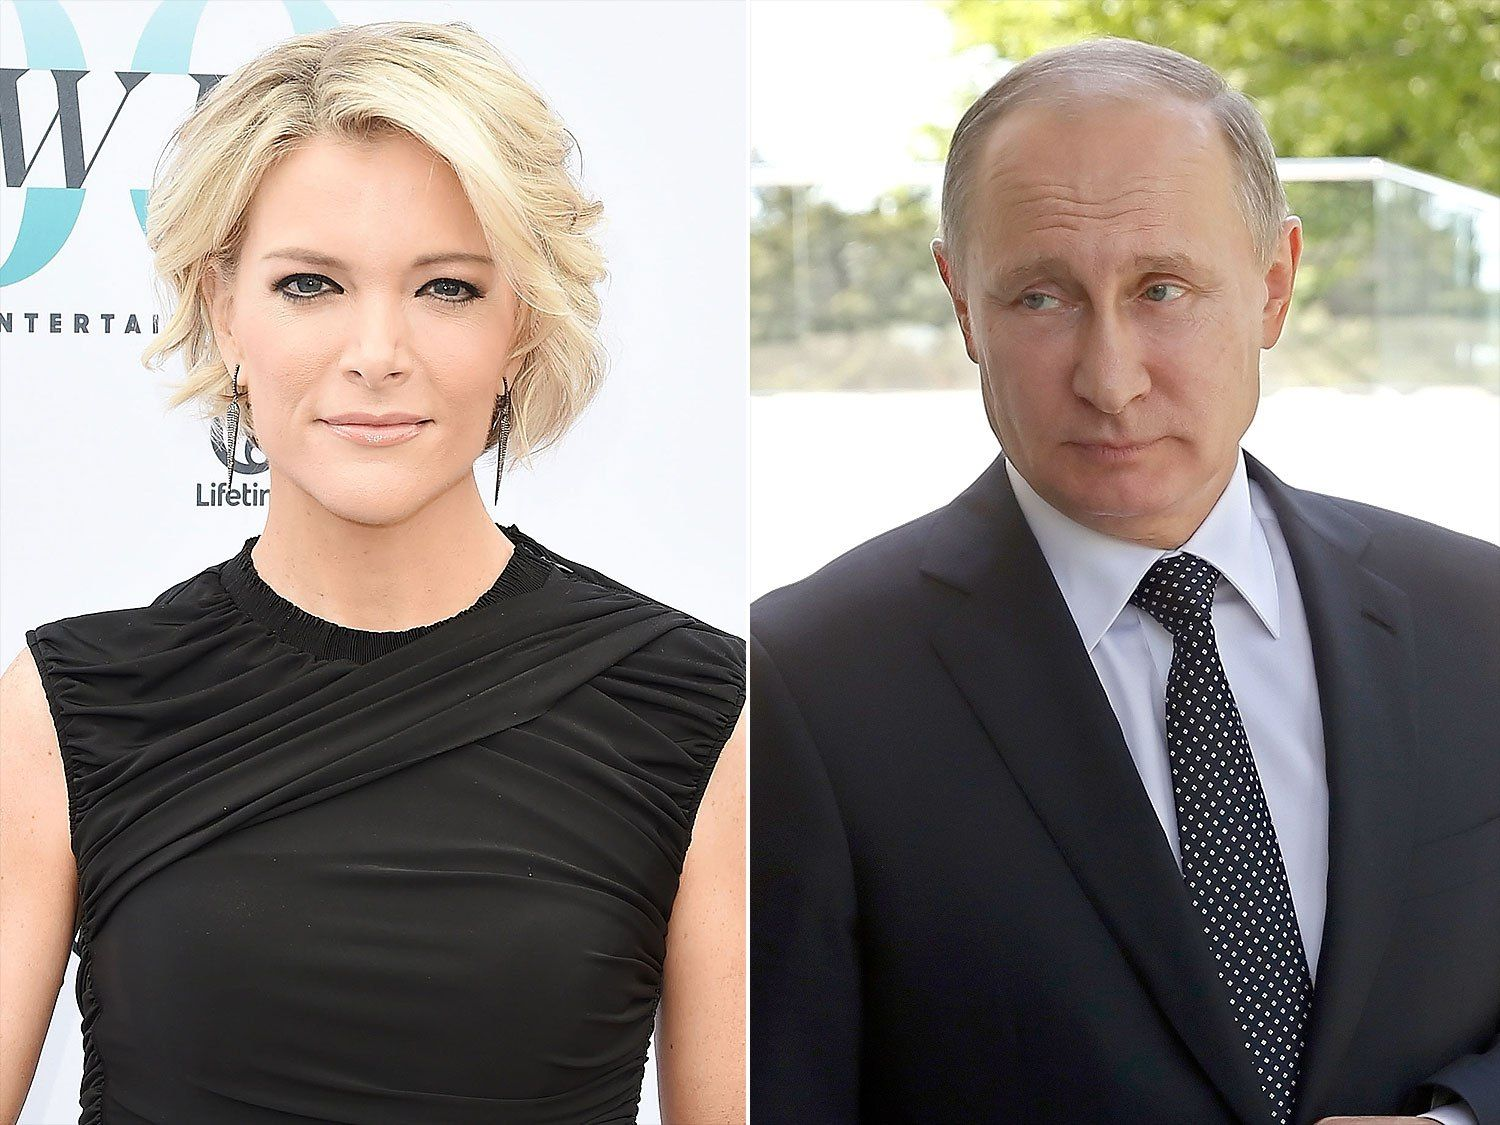 Nbc Sends Megyn Kelly To Russia For An Interview With Vladimir Putin Megyn Kelly Vladimir Putin Interview